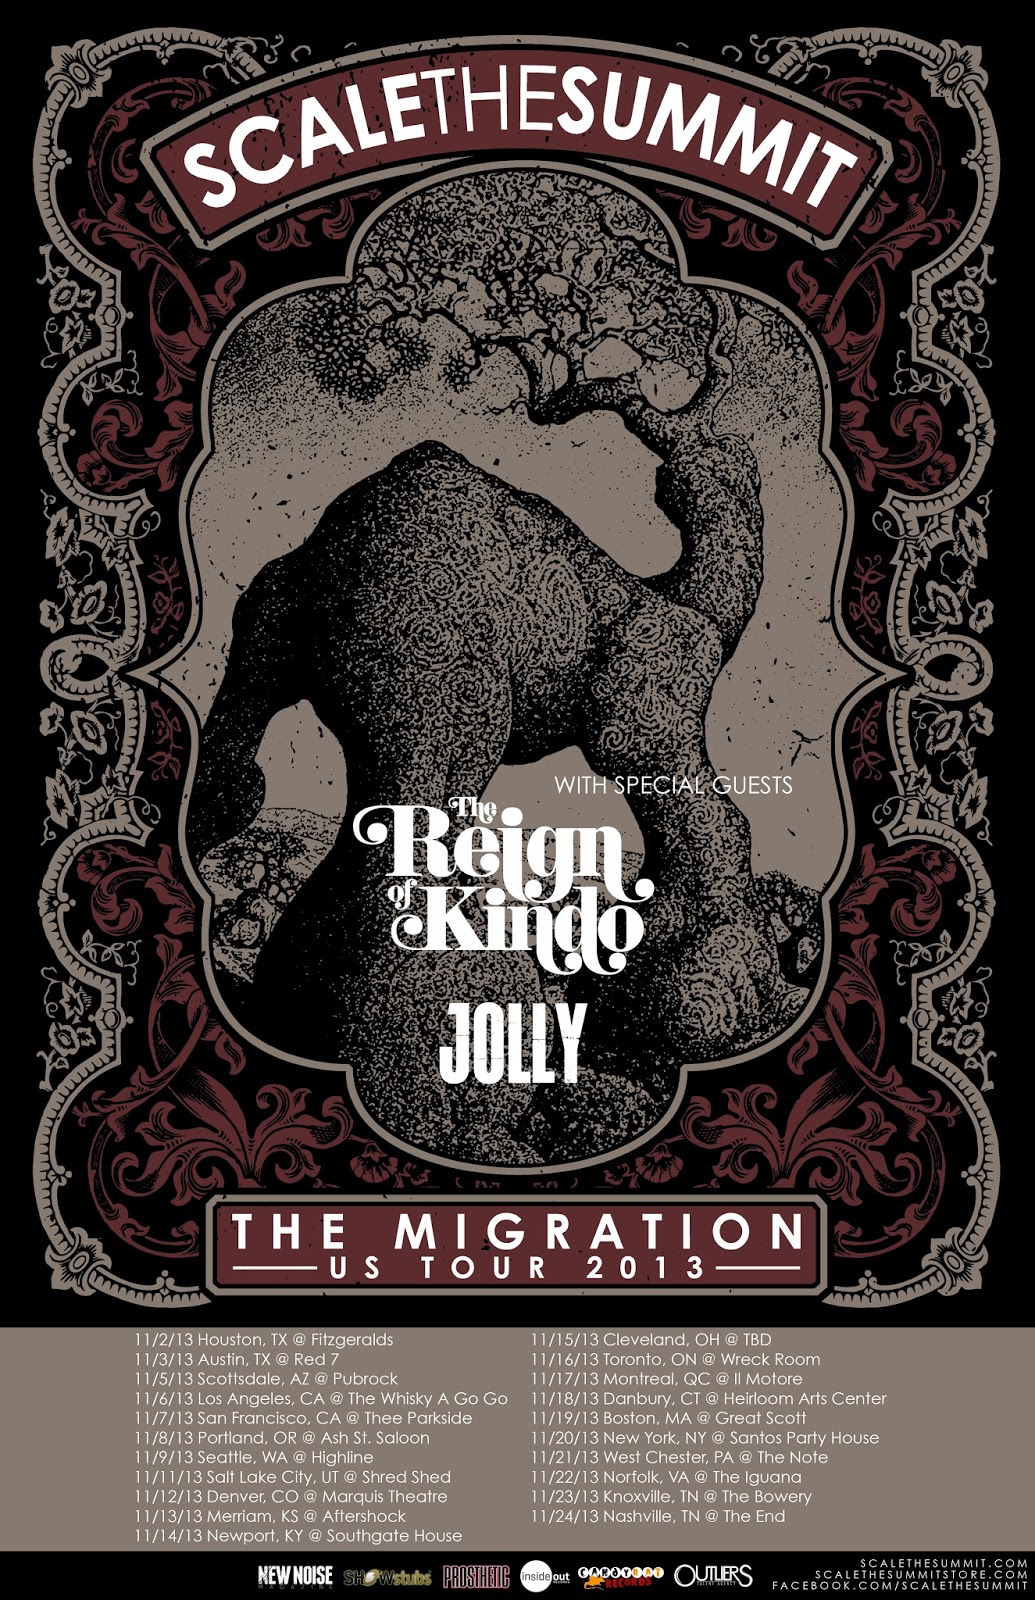 Scale The Summit Headliners In The Migration Us Tour